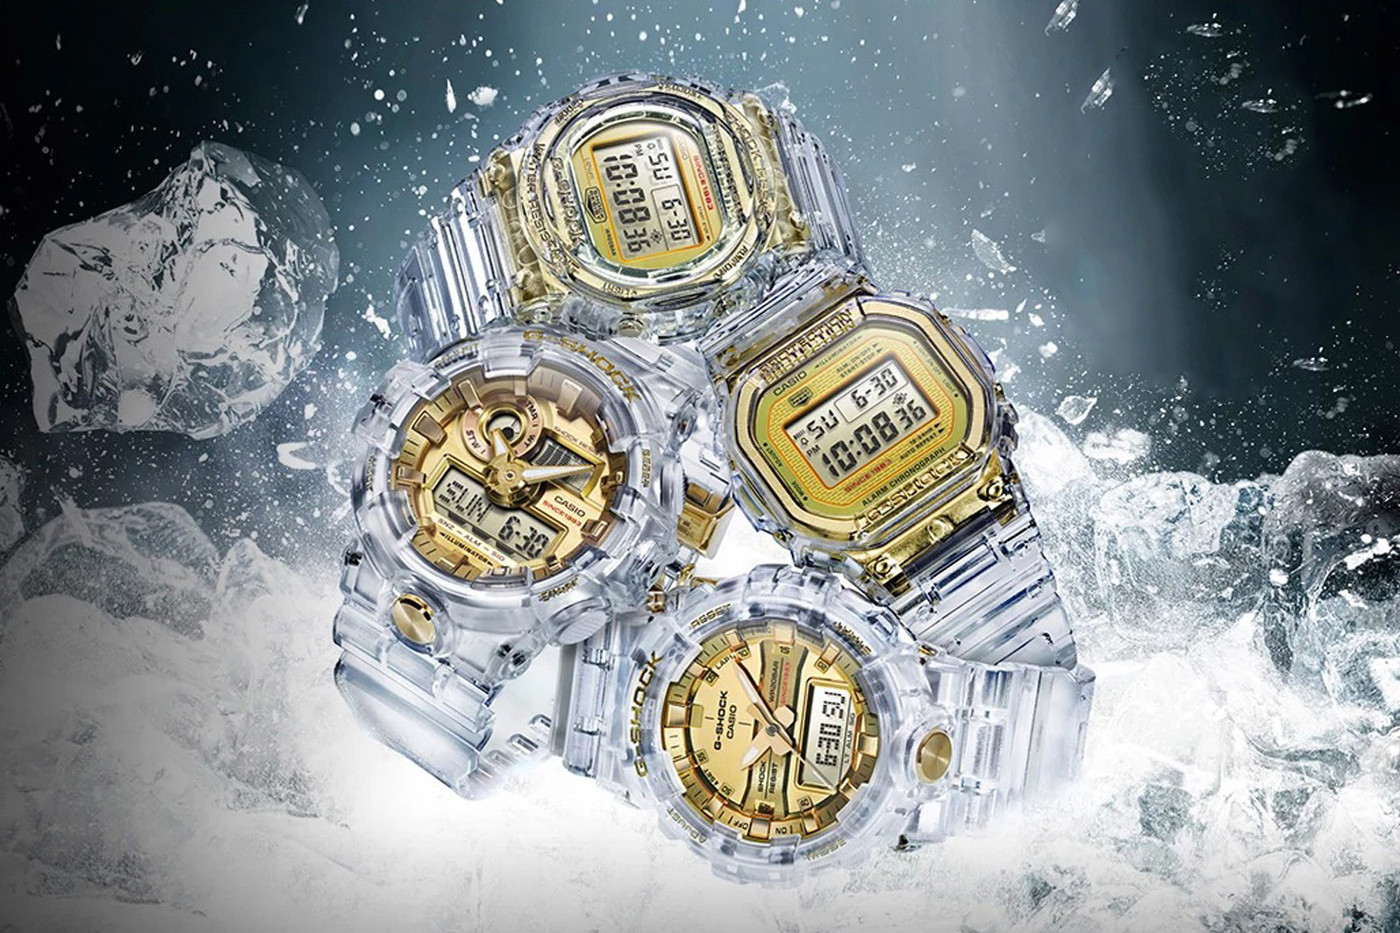 casio g shock skeleton gold th anniversary